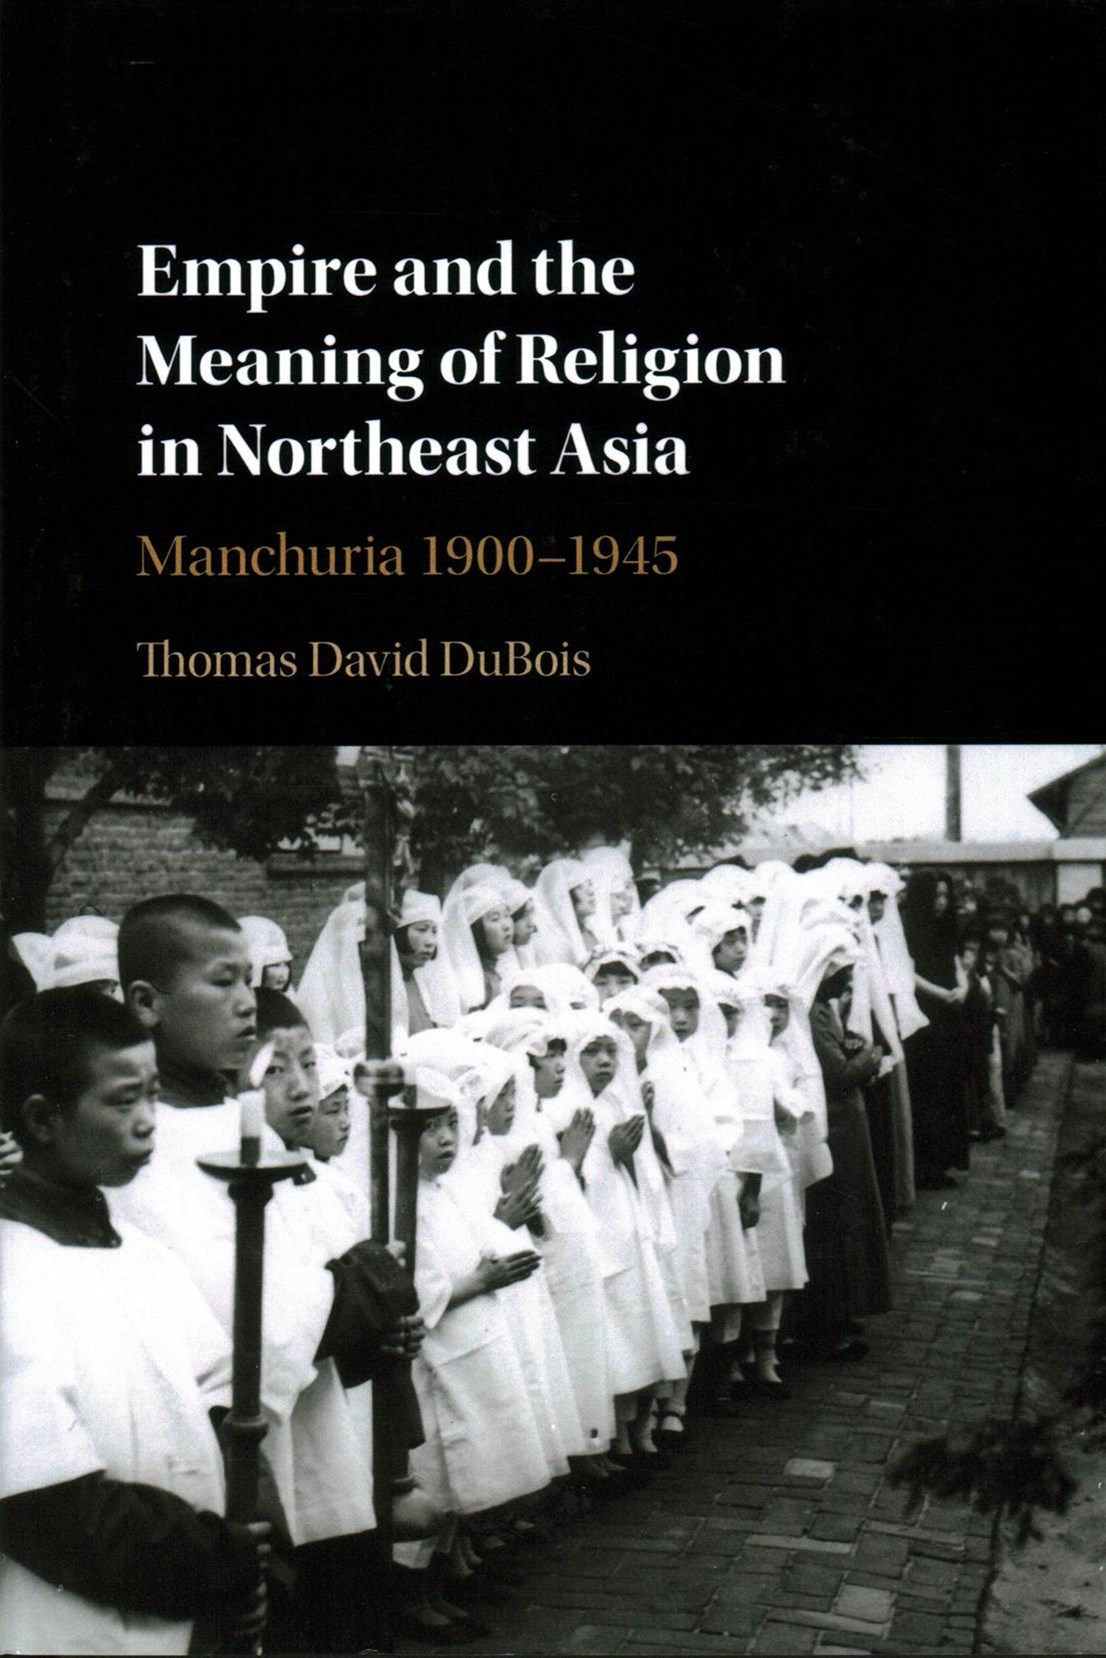 Empire and the Meaning of Religion in Northeast Asia